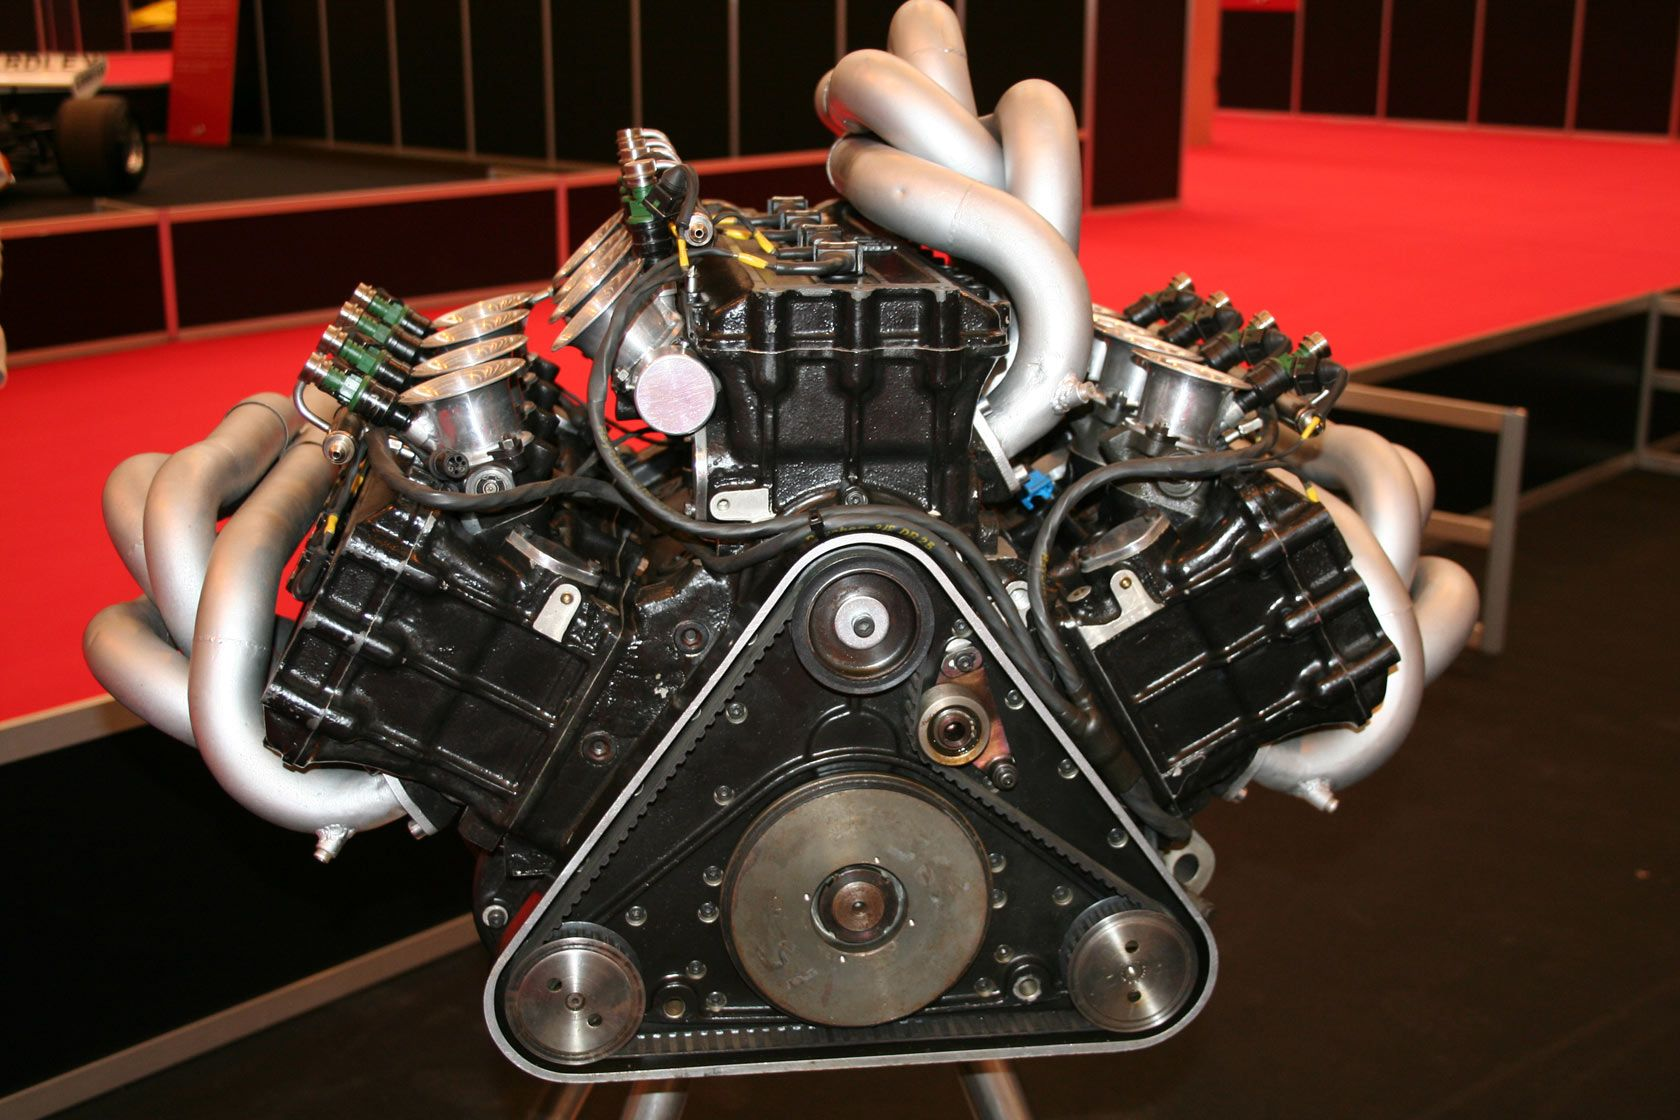 12 cylinder LS12, will blow your mind--take 3 x 2.0 Ecotec I4's and make a  6.0 550hp W12